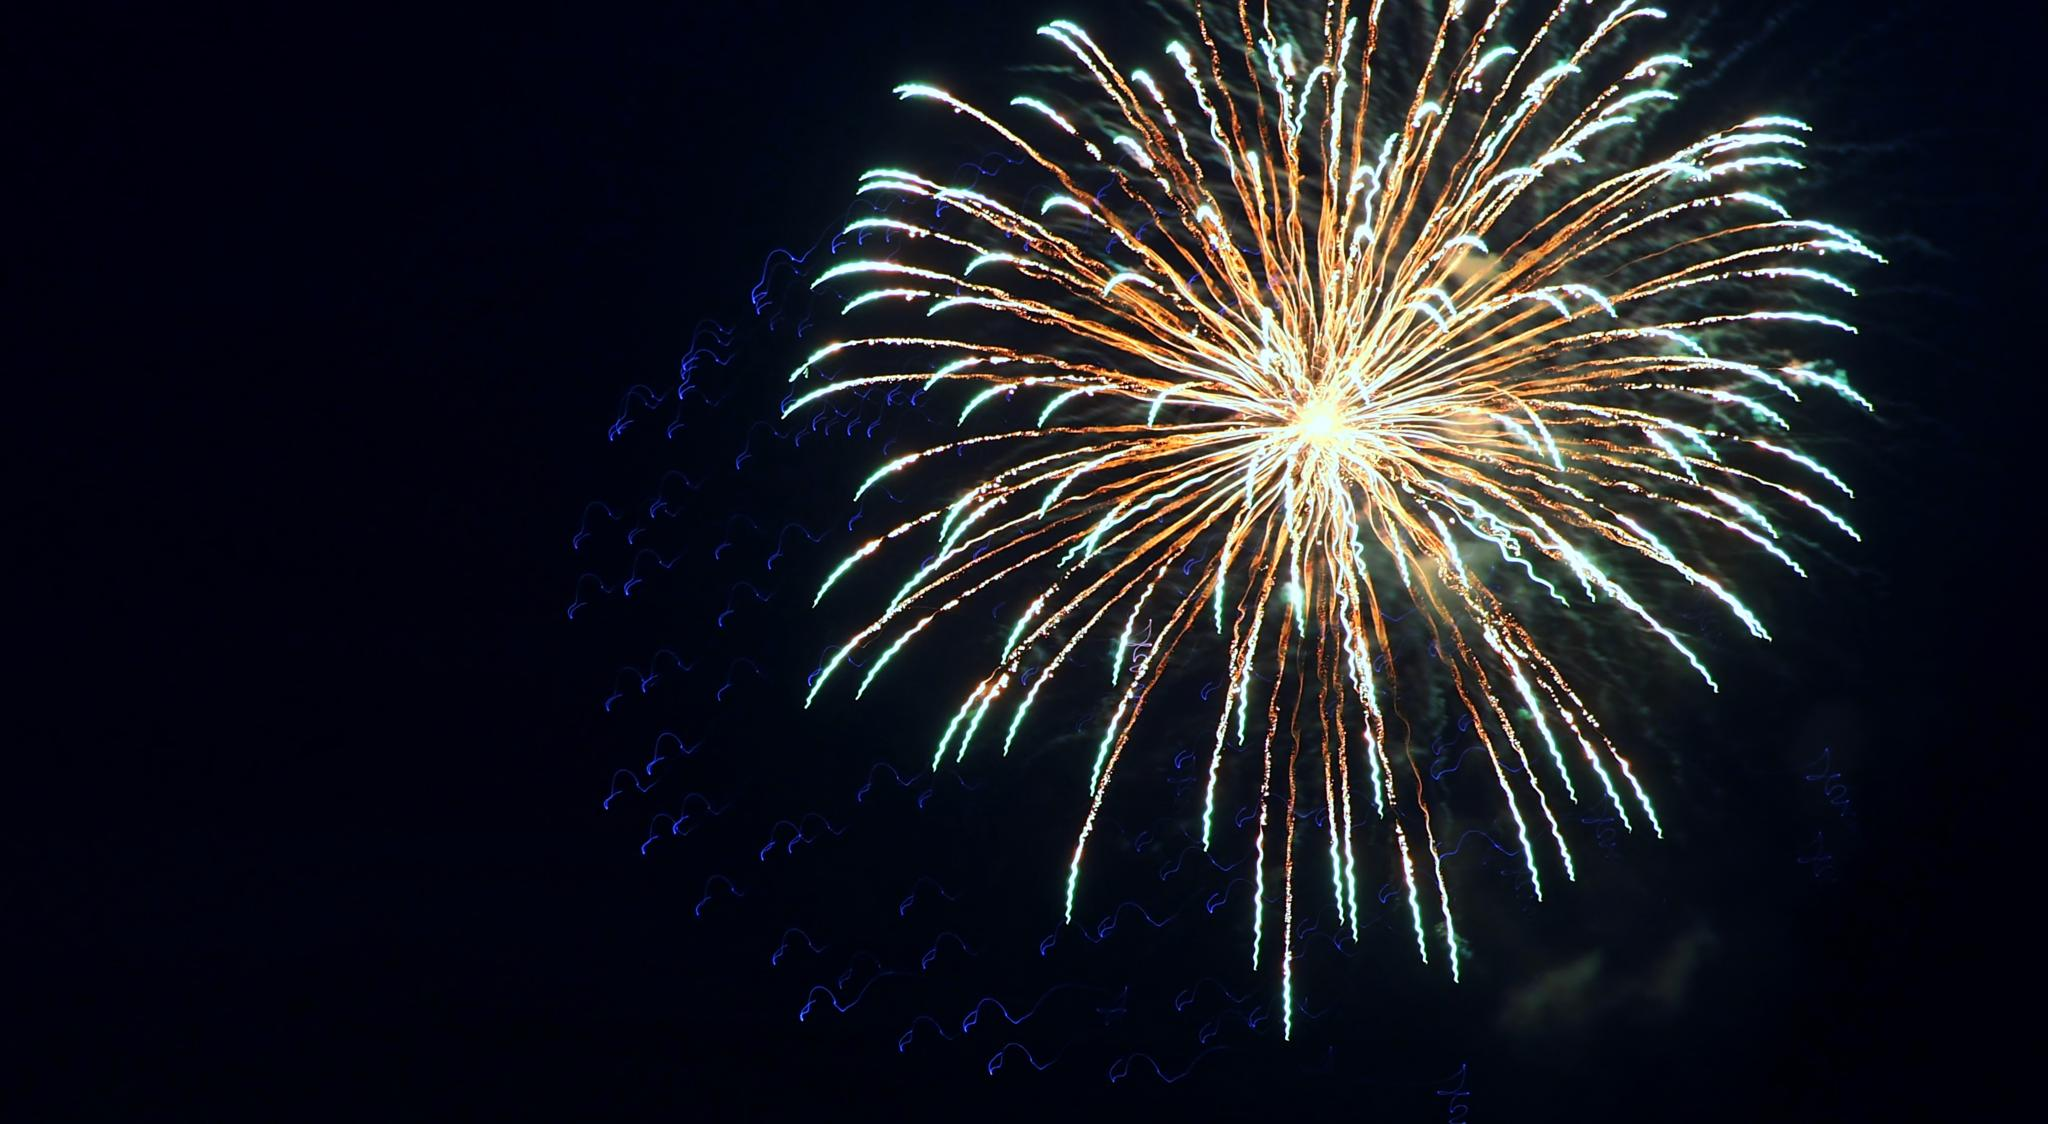 Tuesday Summer Fireworks by william.l.bosley